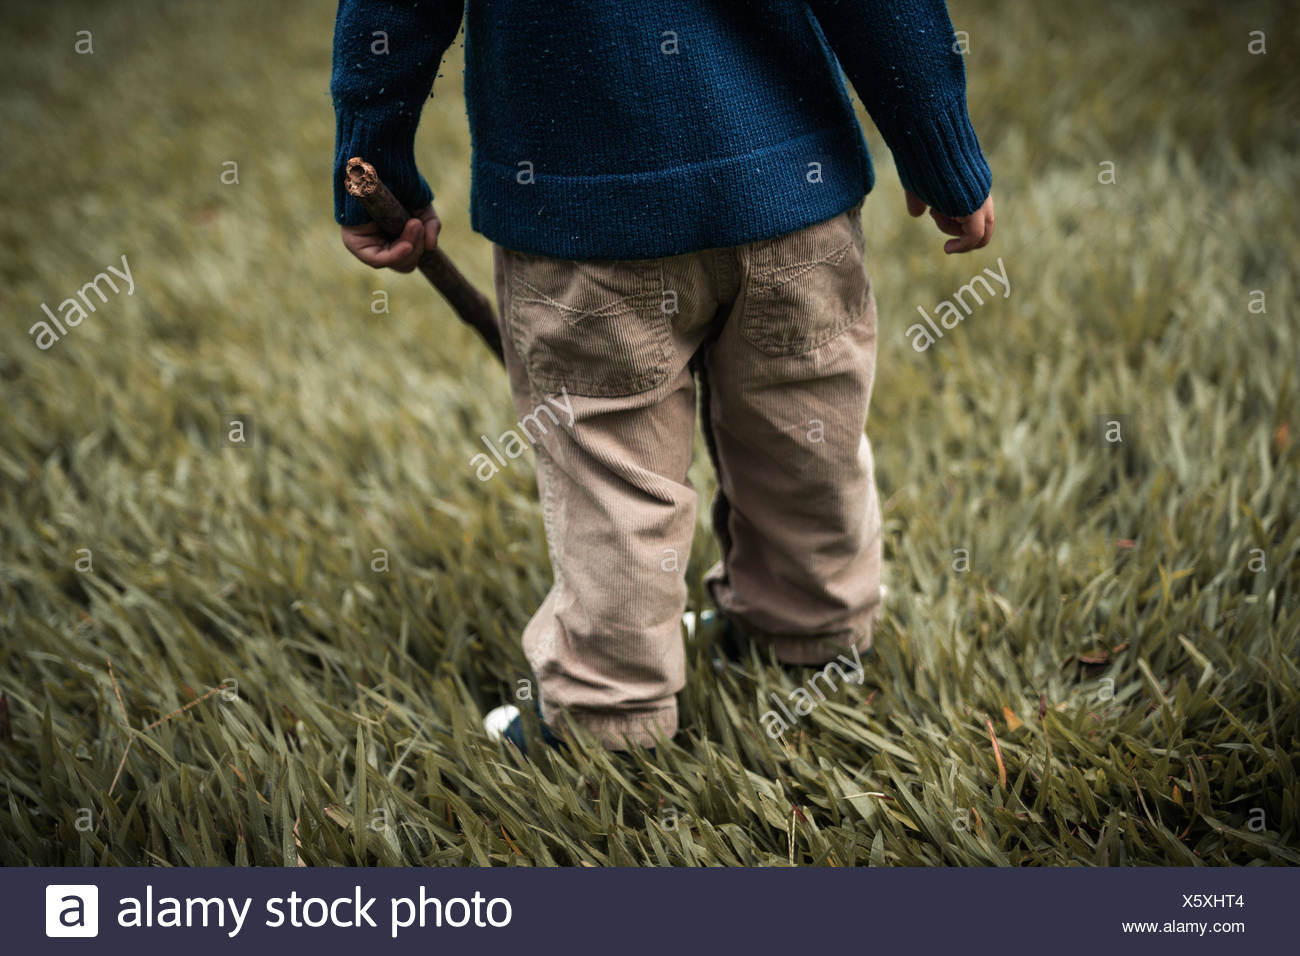 Low section of a toddler standing in field holding a wooden stick - Stock Image